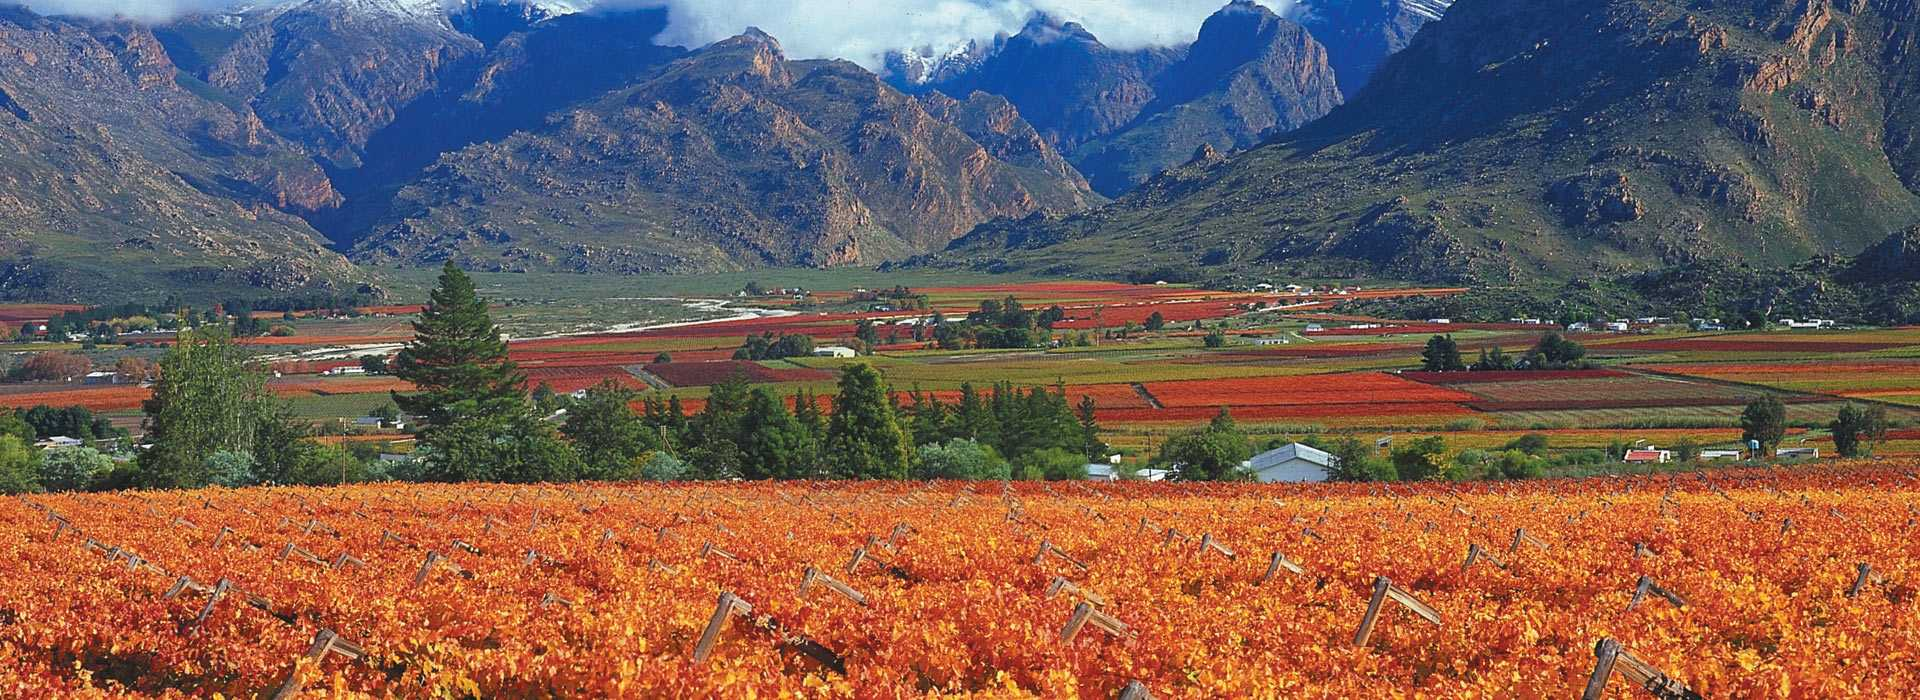 Beautiful Winelands Landscape